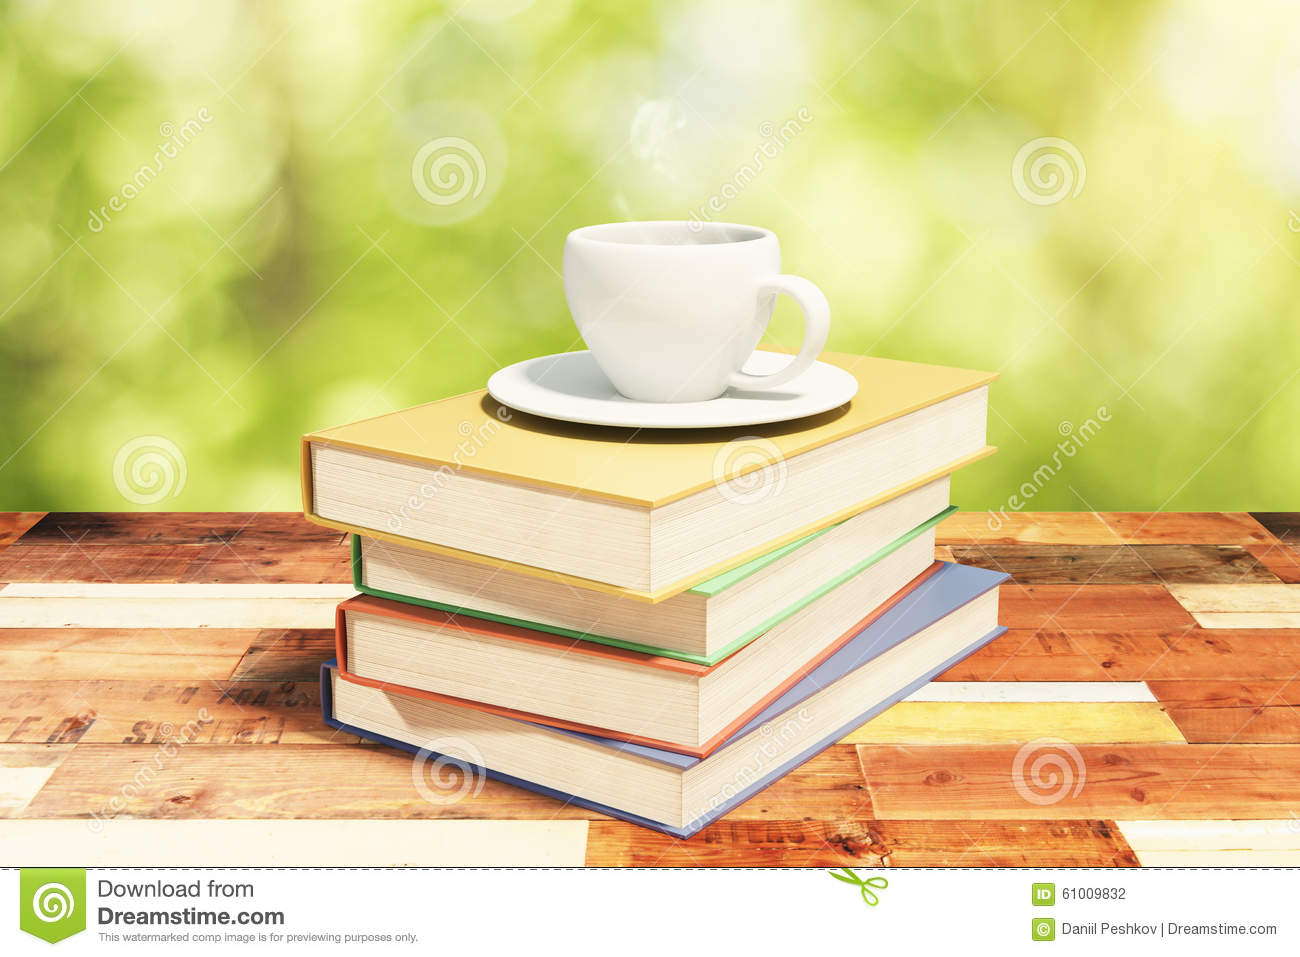 Best Nature Coffee Table Books